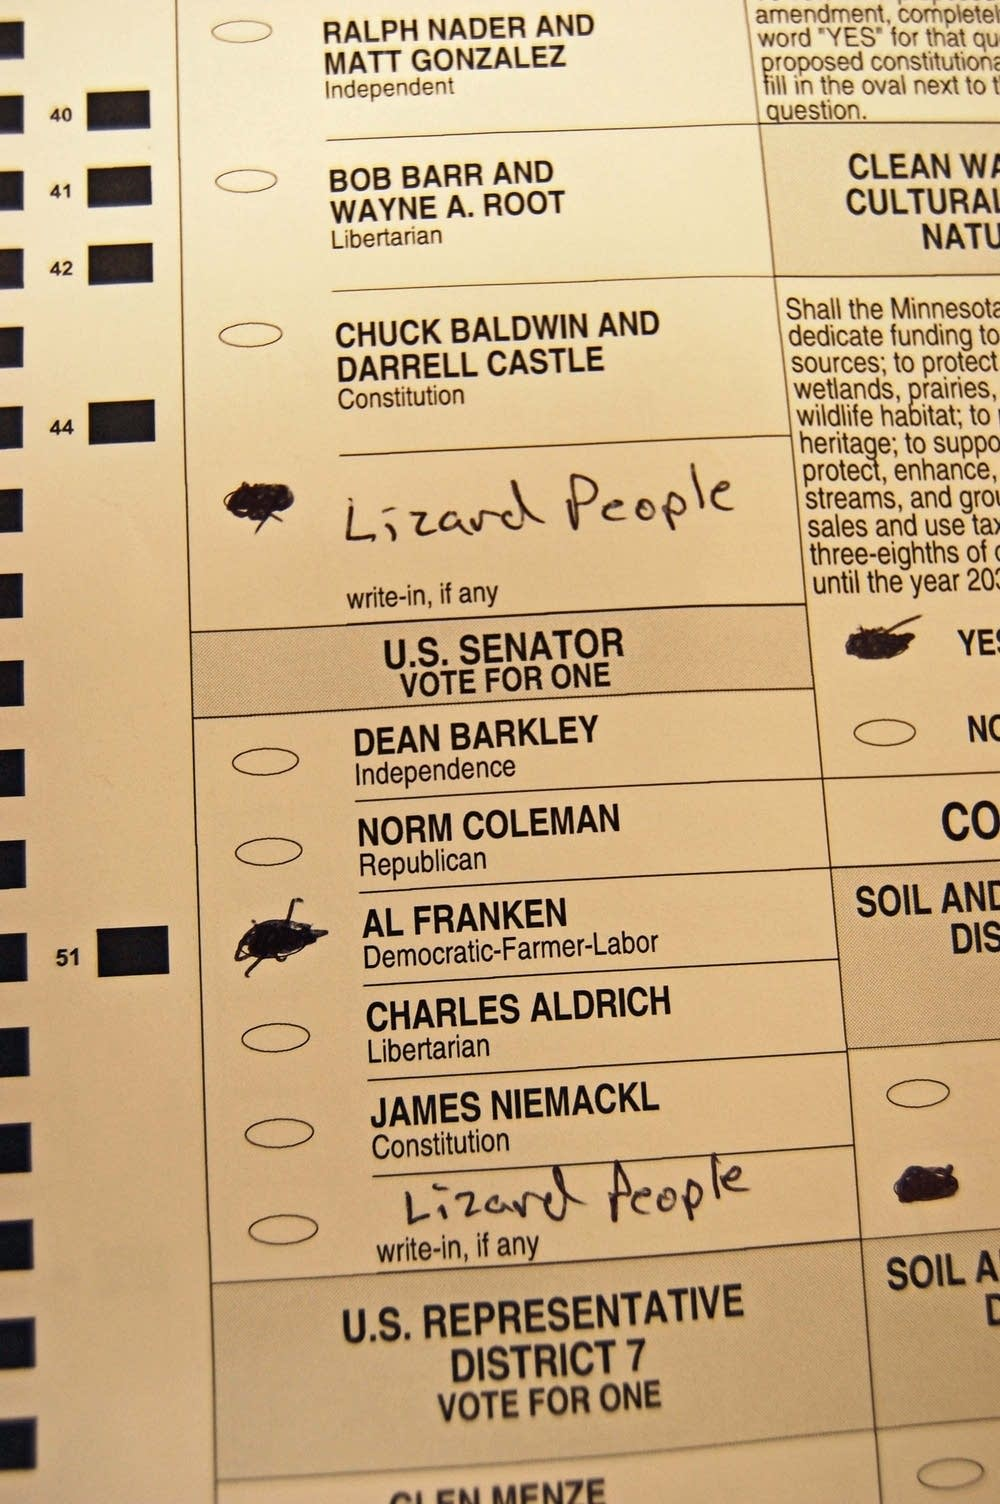 A challeneged ballot with a write-in